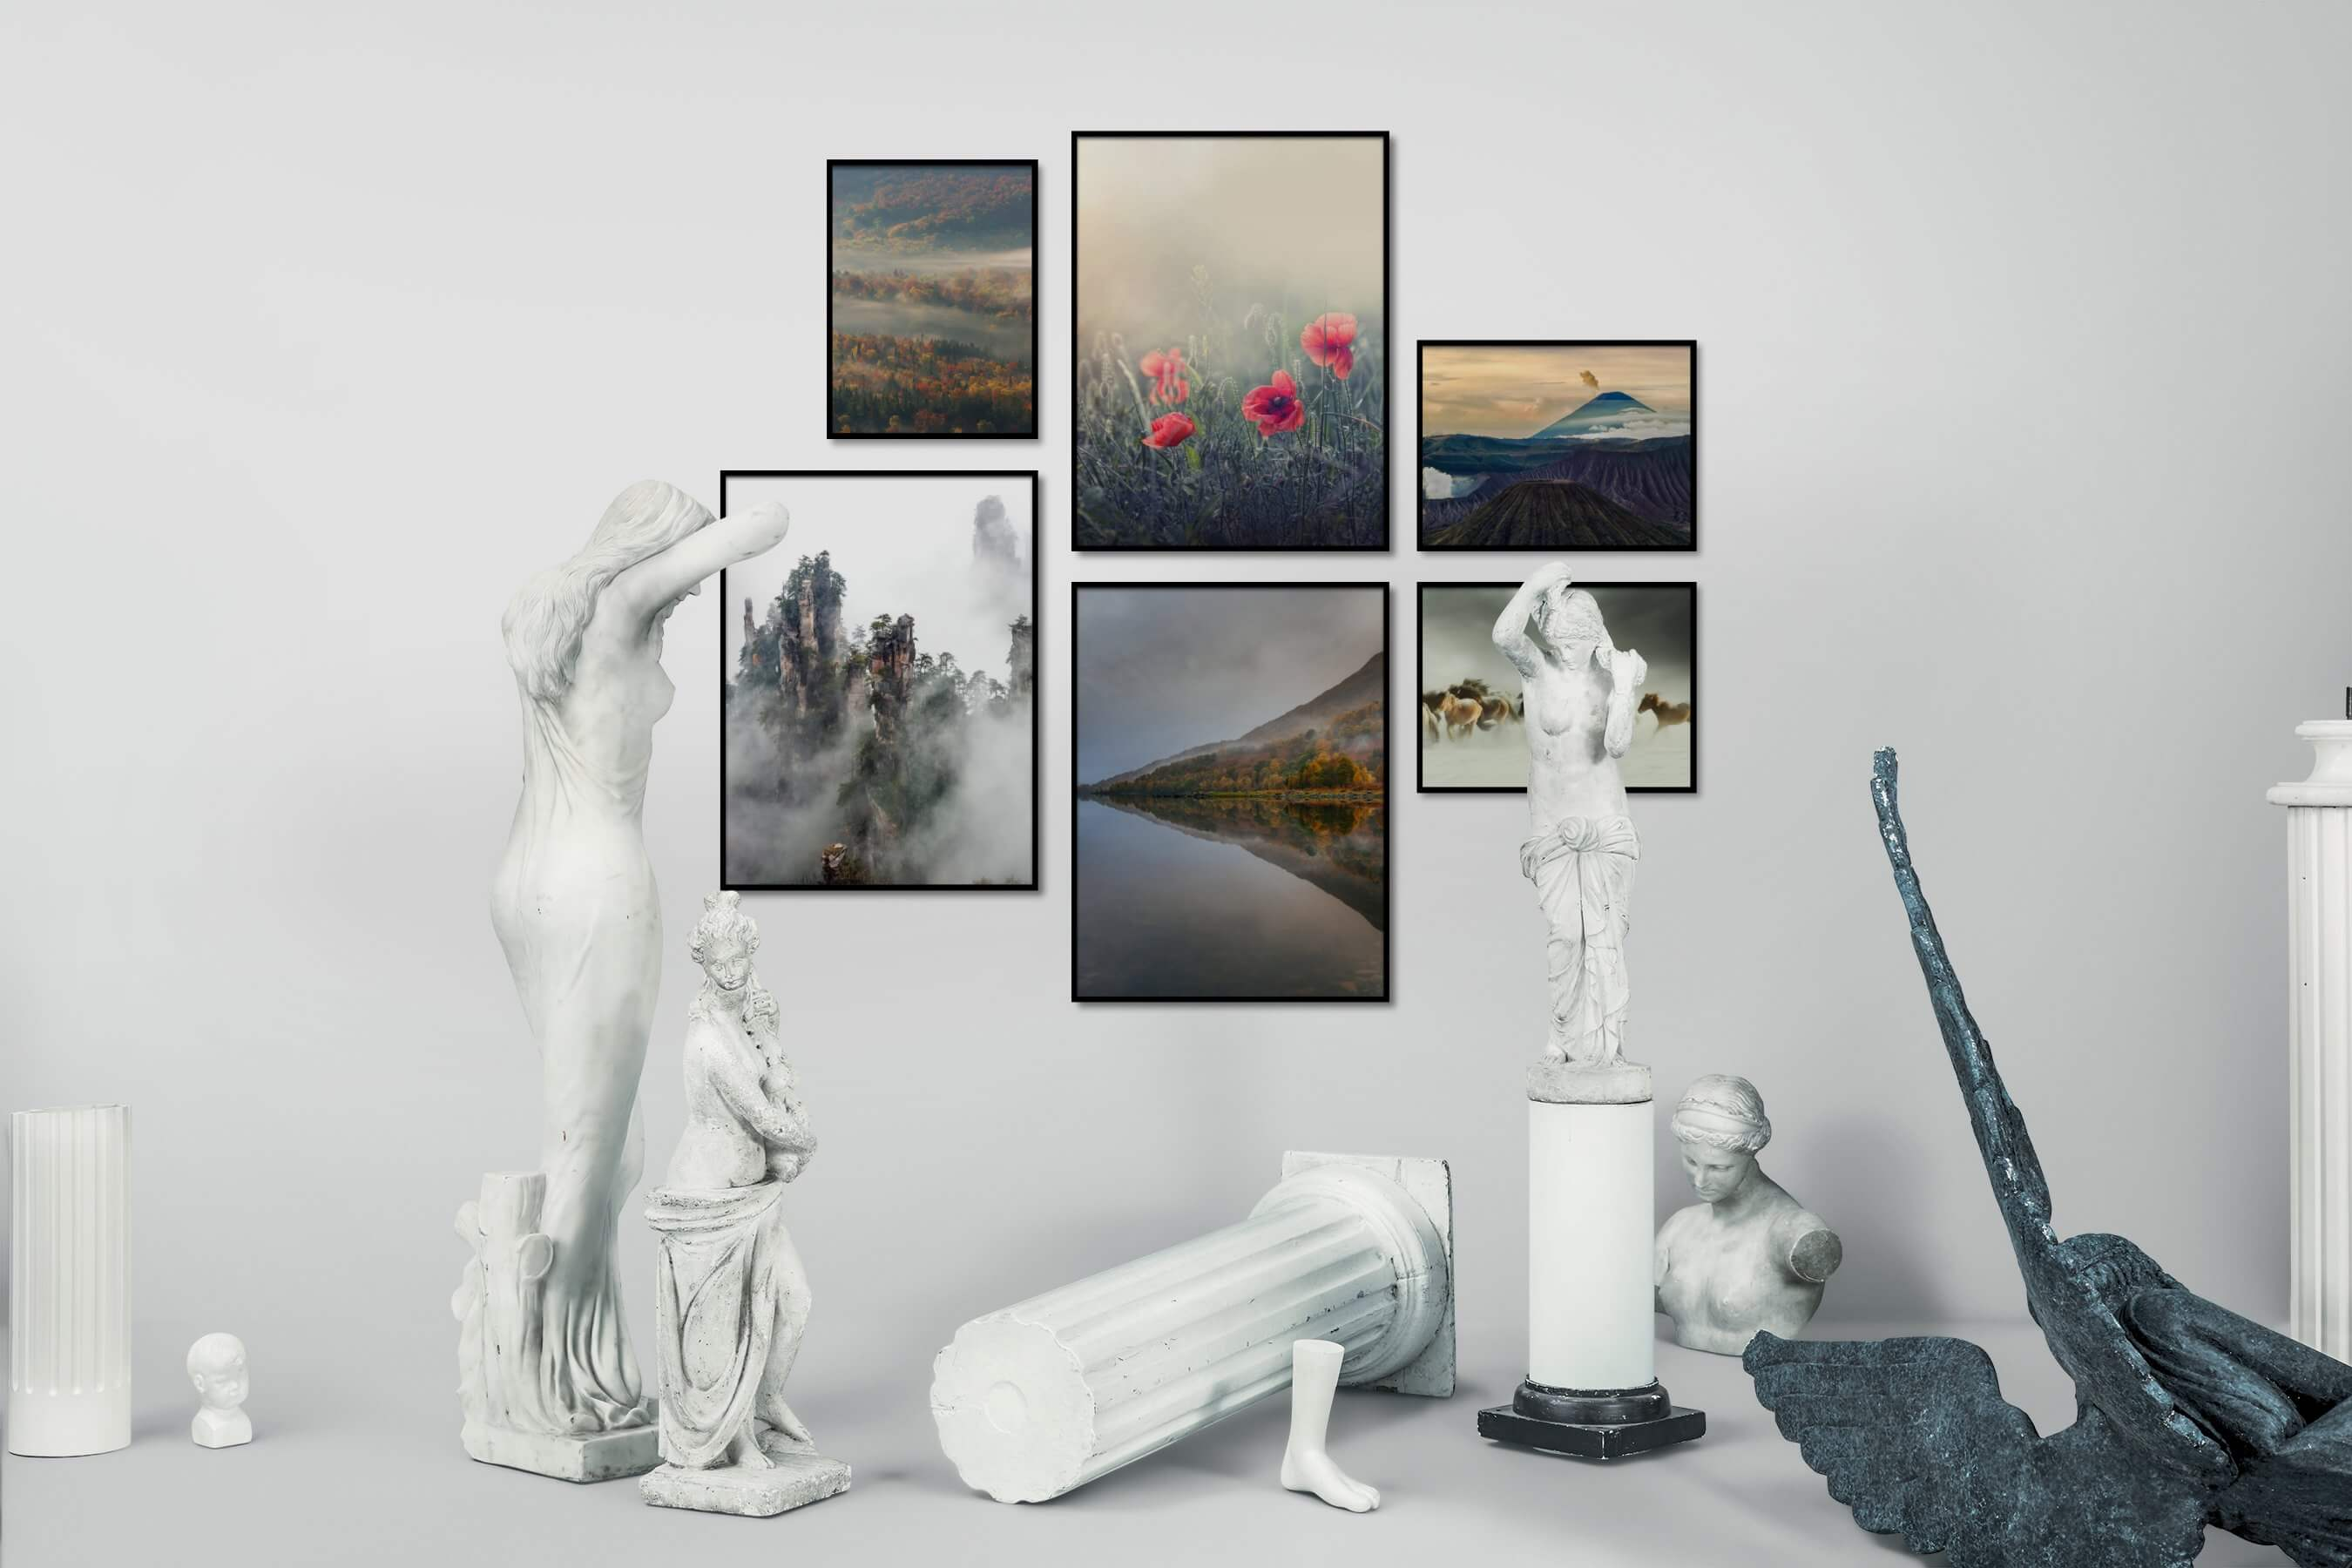 Gallery wall idea with six framed pictures arranged on a wall depicting Nature, Flowers & Plants, Mindfulness, For the Minimalist, Beach & Water, Animals, and Country Life